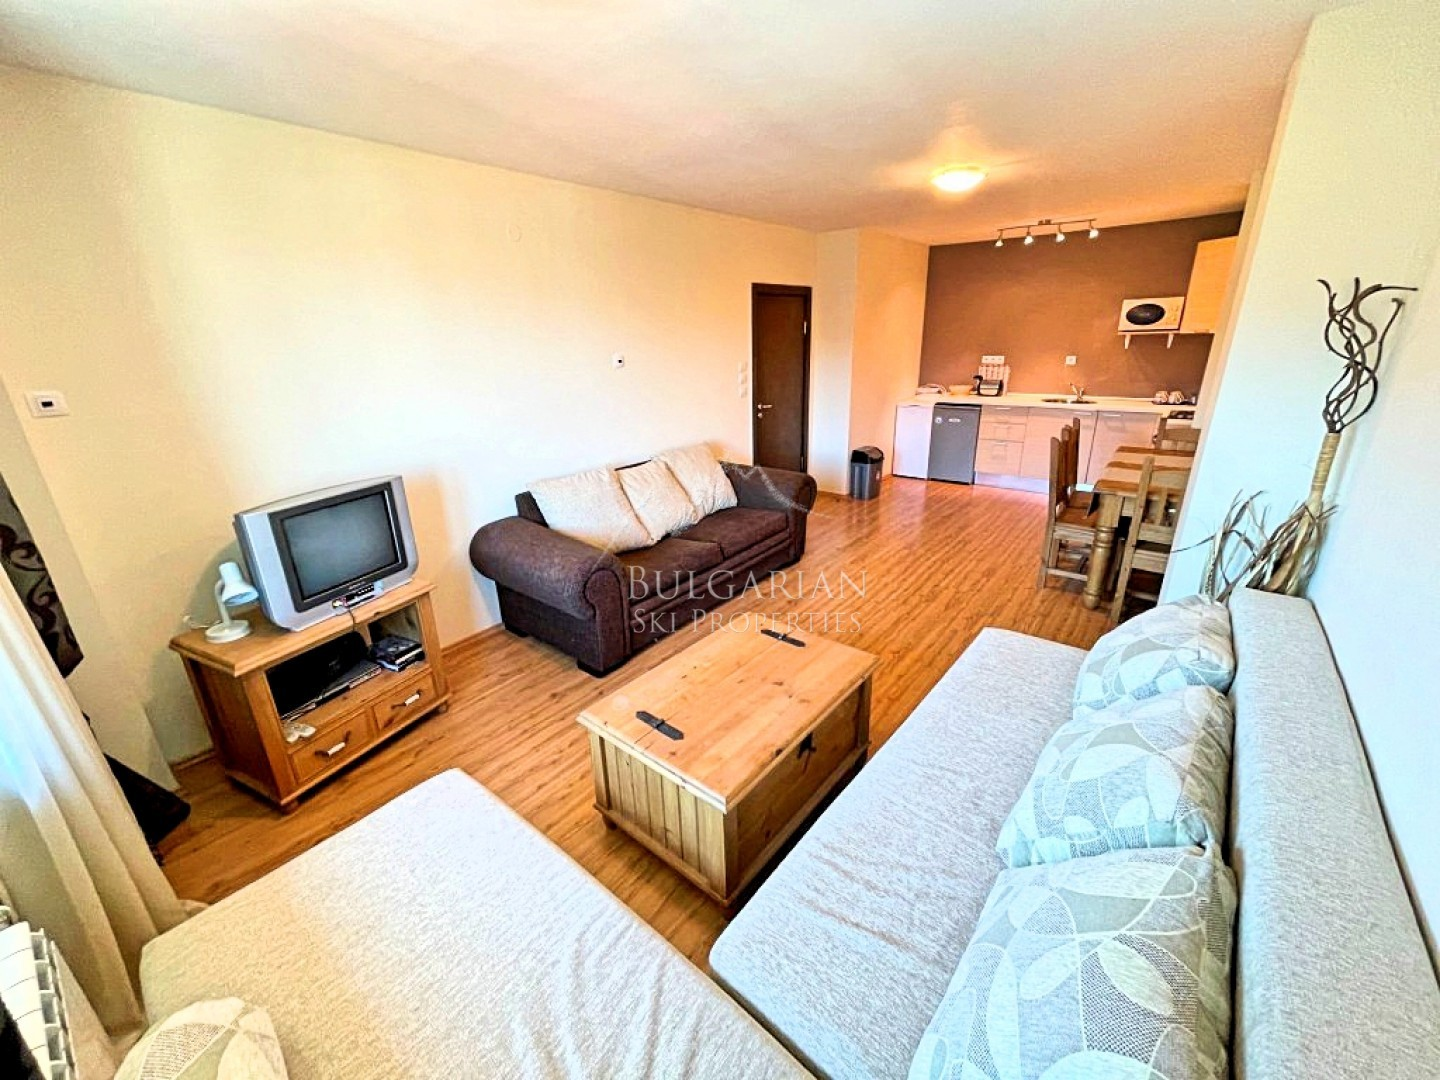 Bansko: spacious one-bedroom apartment close to the Ski lift for sale